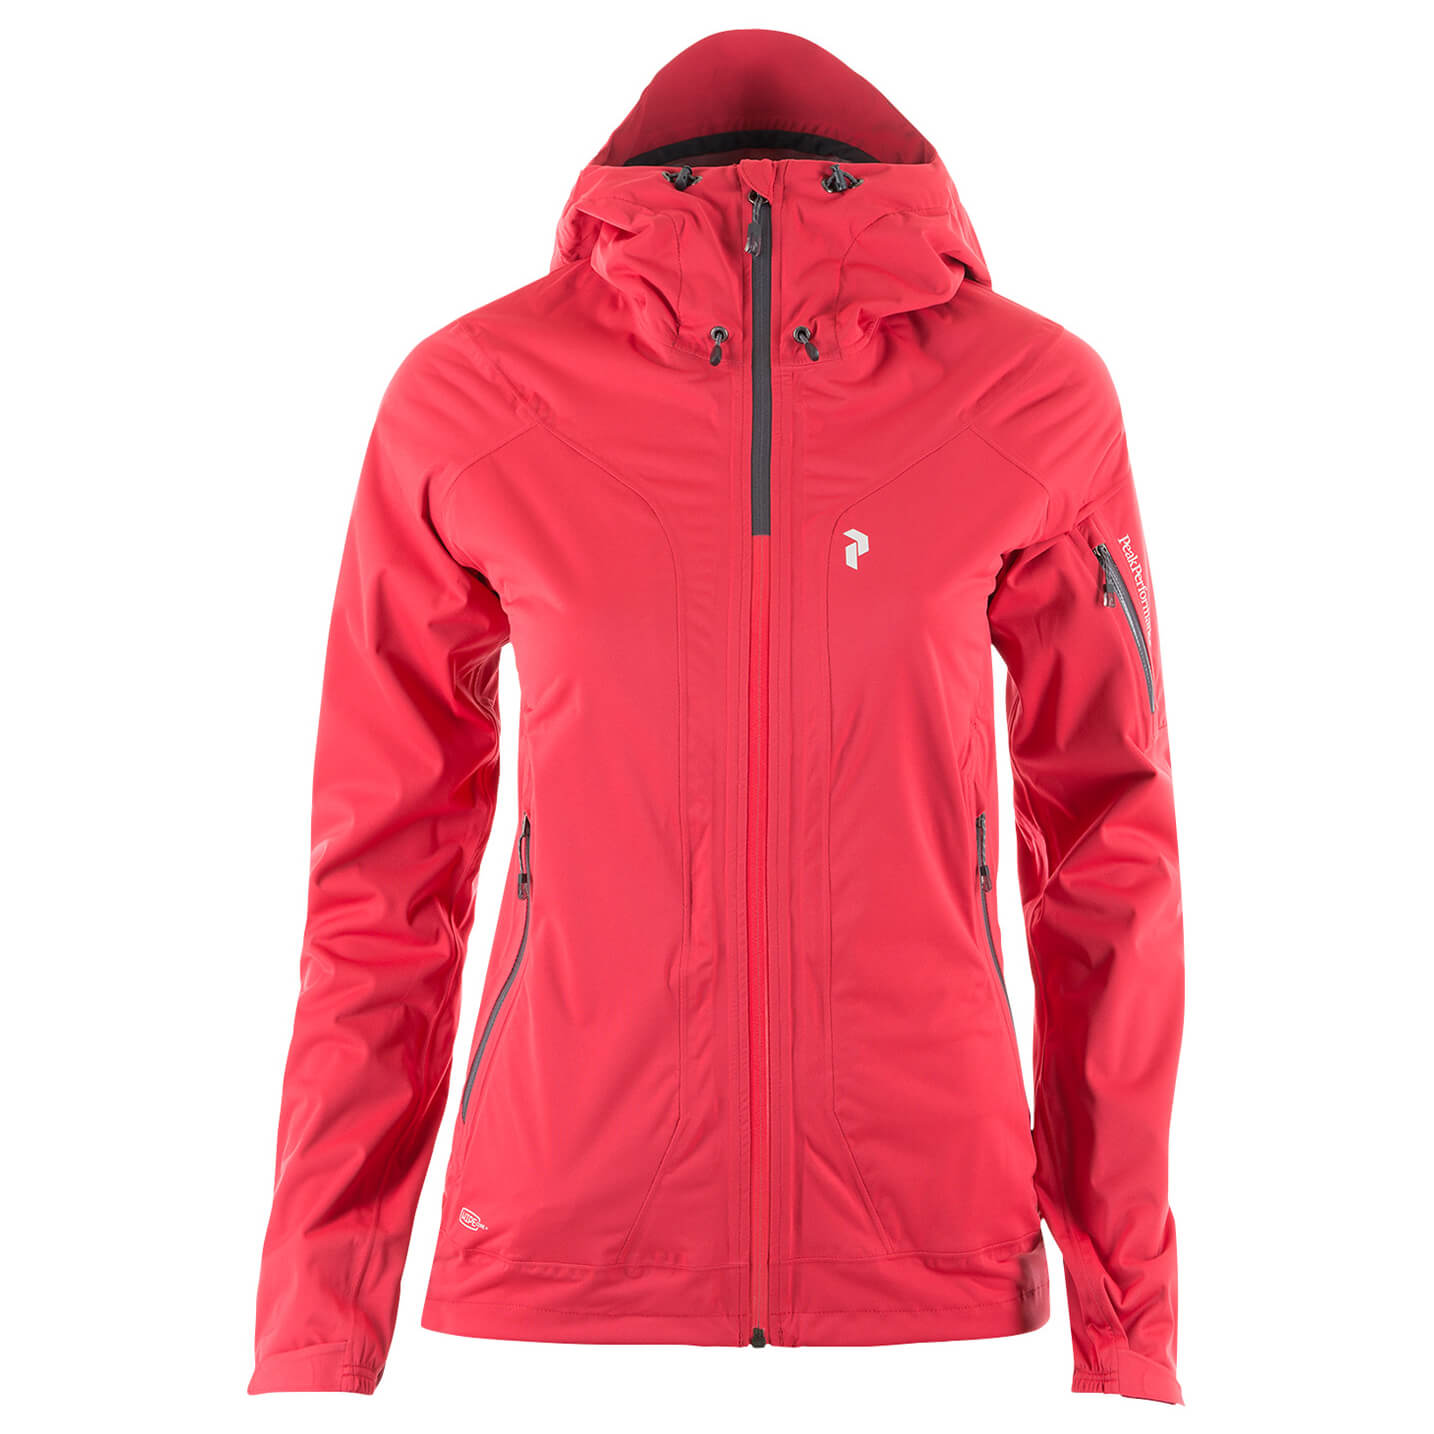 Hardshell jacke peak performance